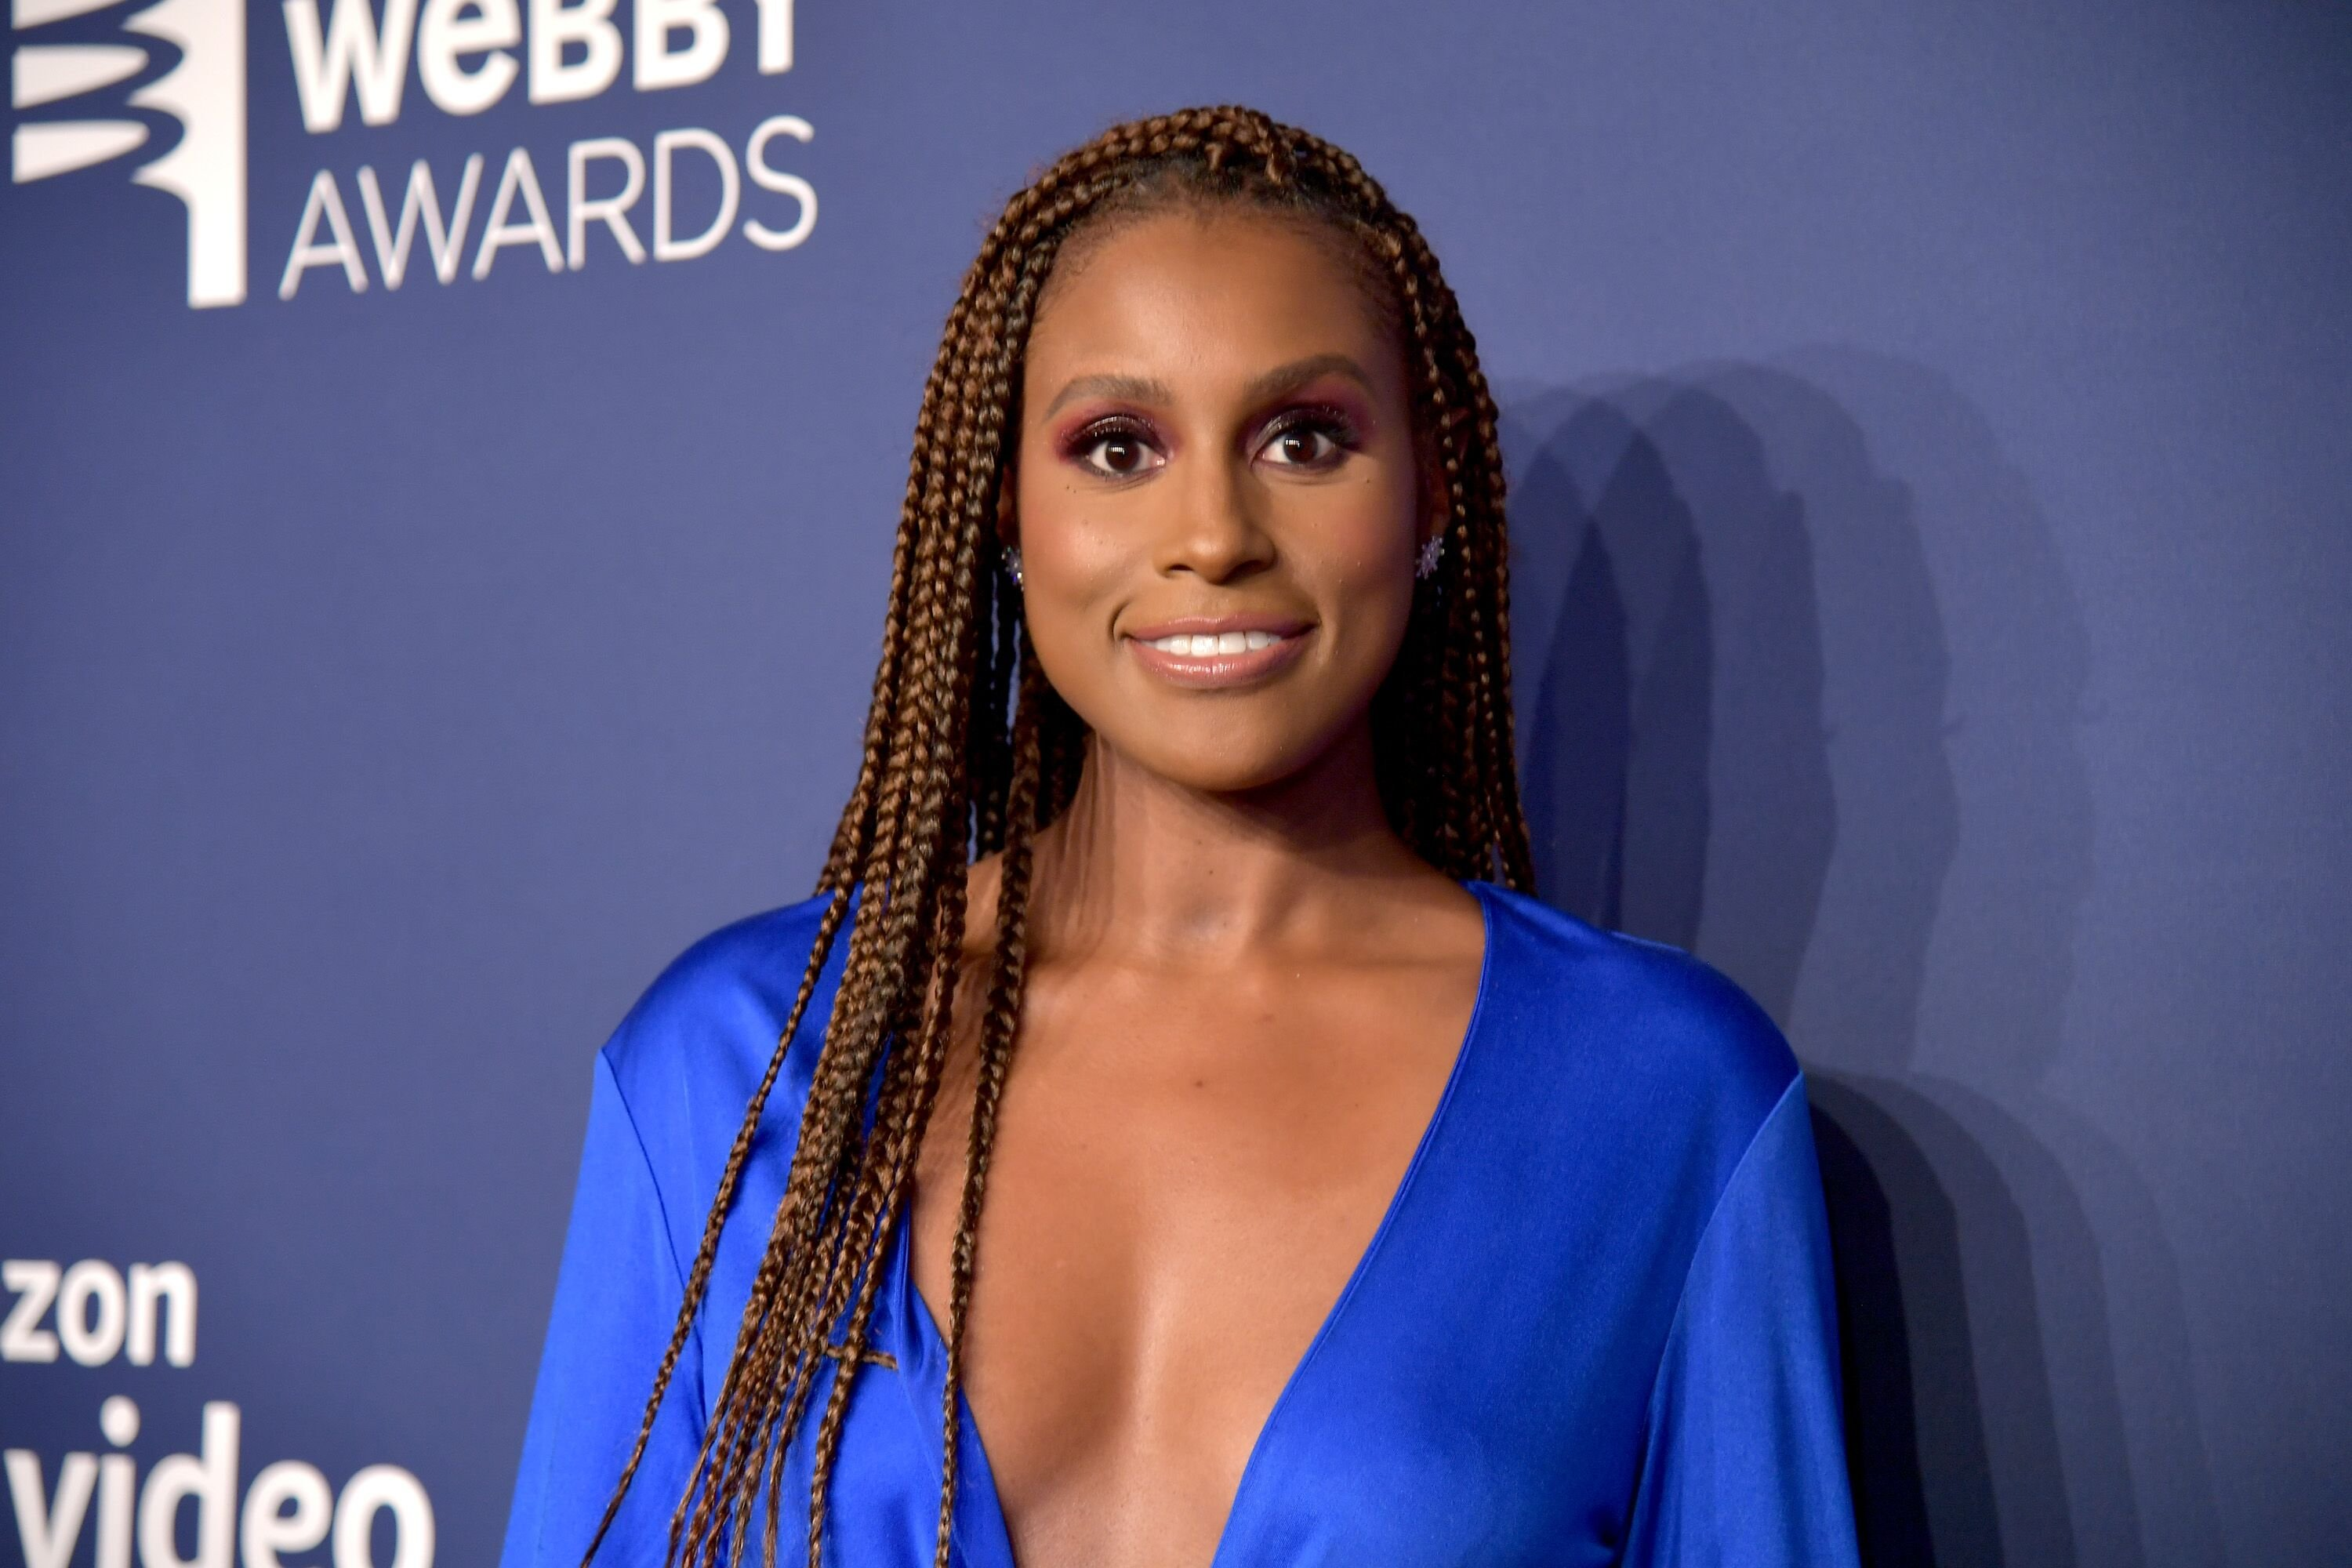 Issa Rae at the 2019 Webby Awards in New York City/ Source: Getty Images